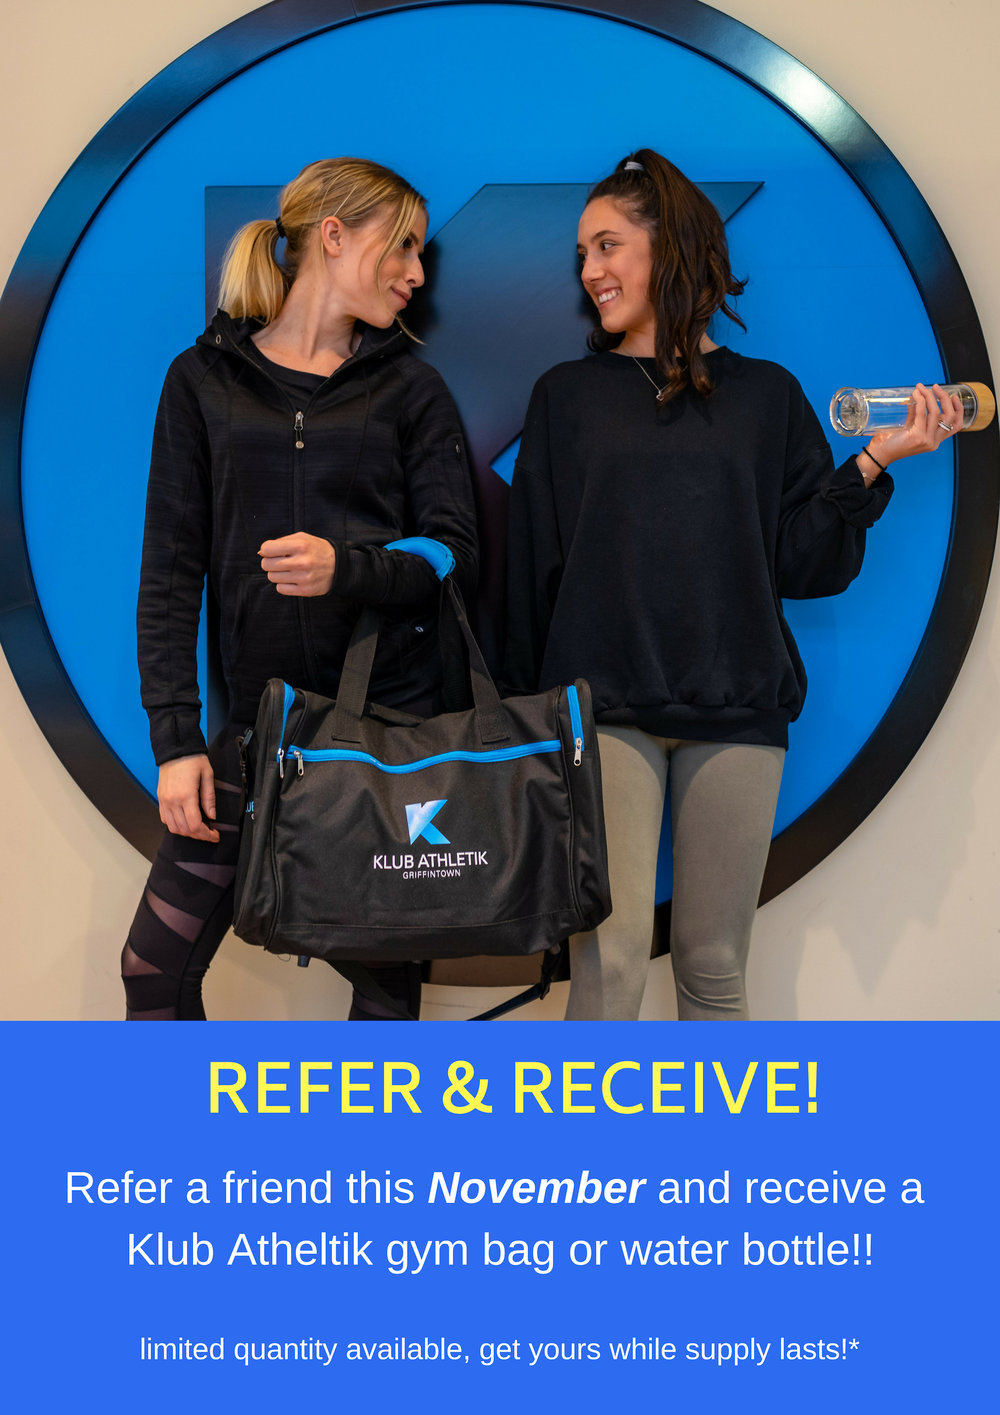 REFER & RECEIVE.jpg